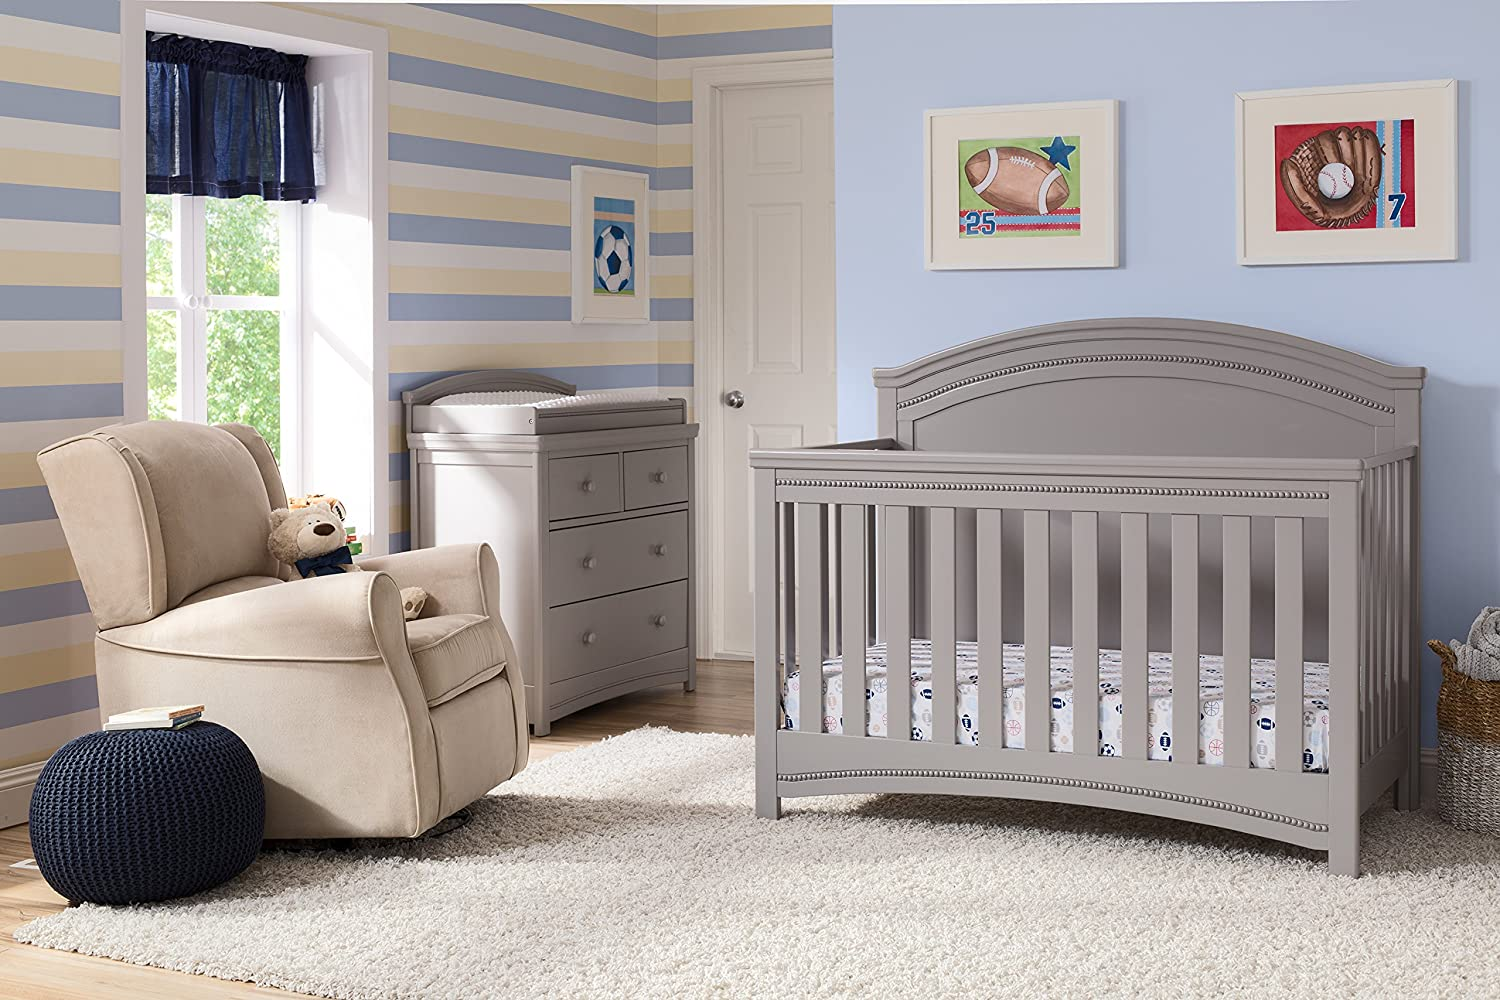 Simmons Kids SlumberTime Emma Convertible Baby Crib N More, Grey